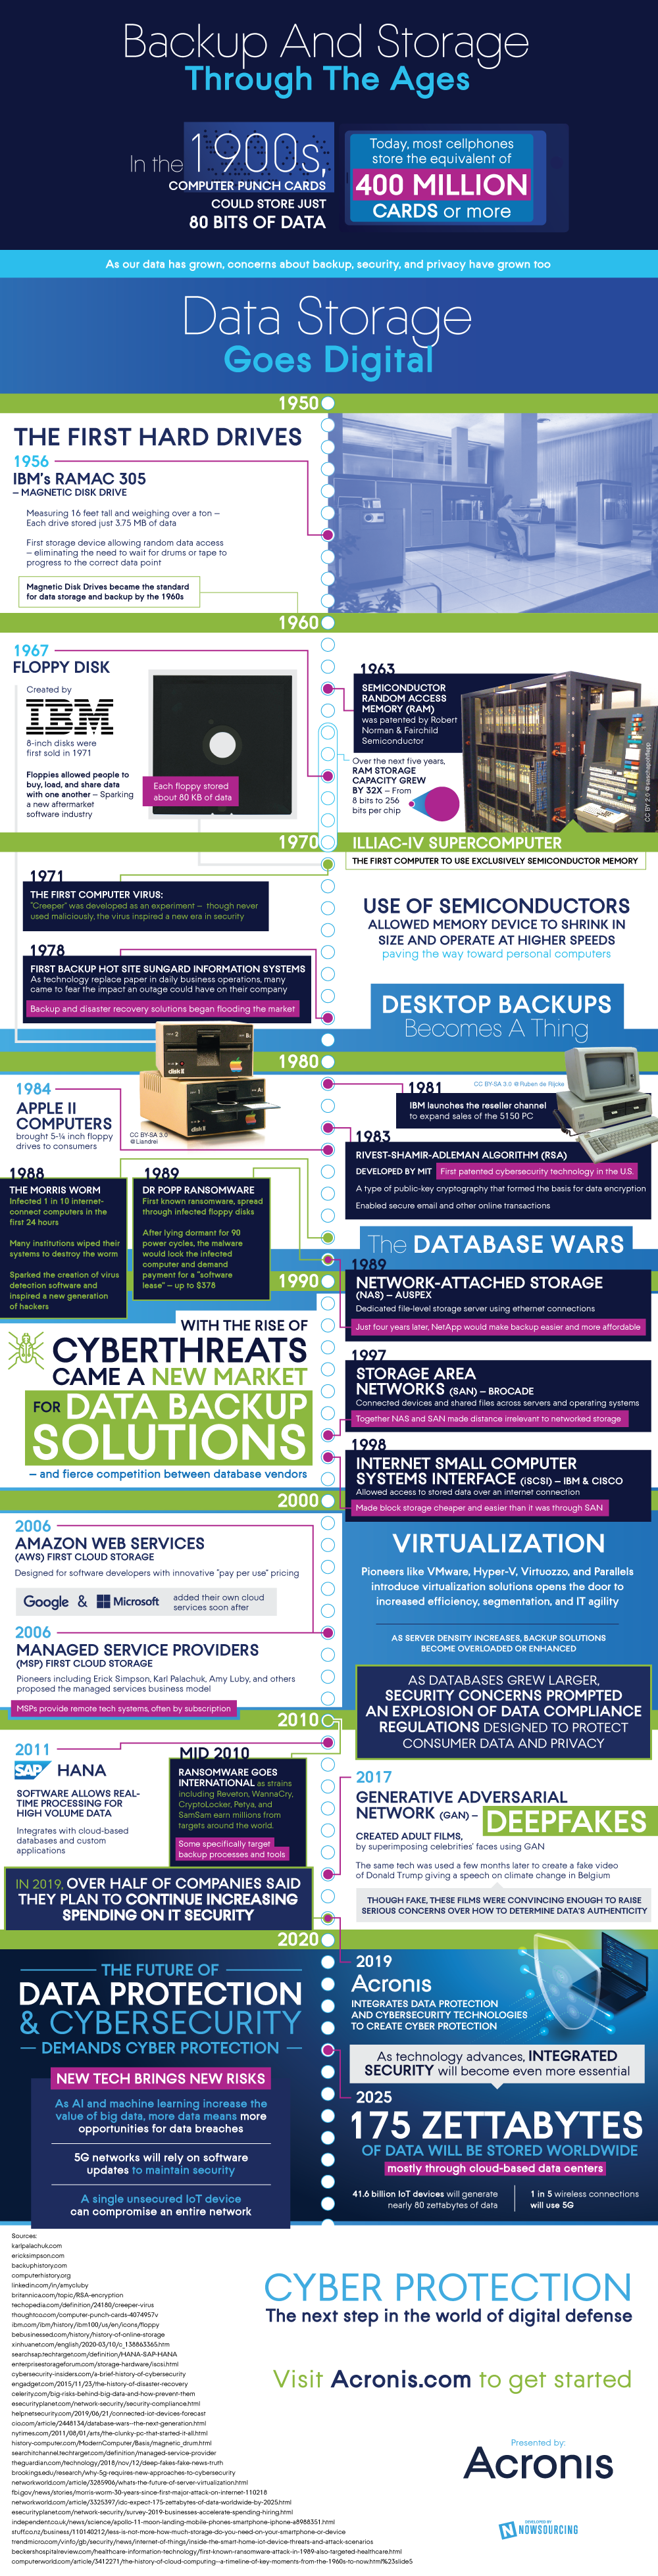 A Look Back at the Evolution of Cyber Protection #infographic